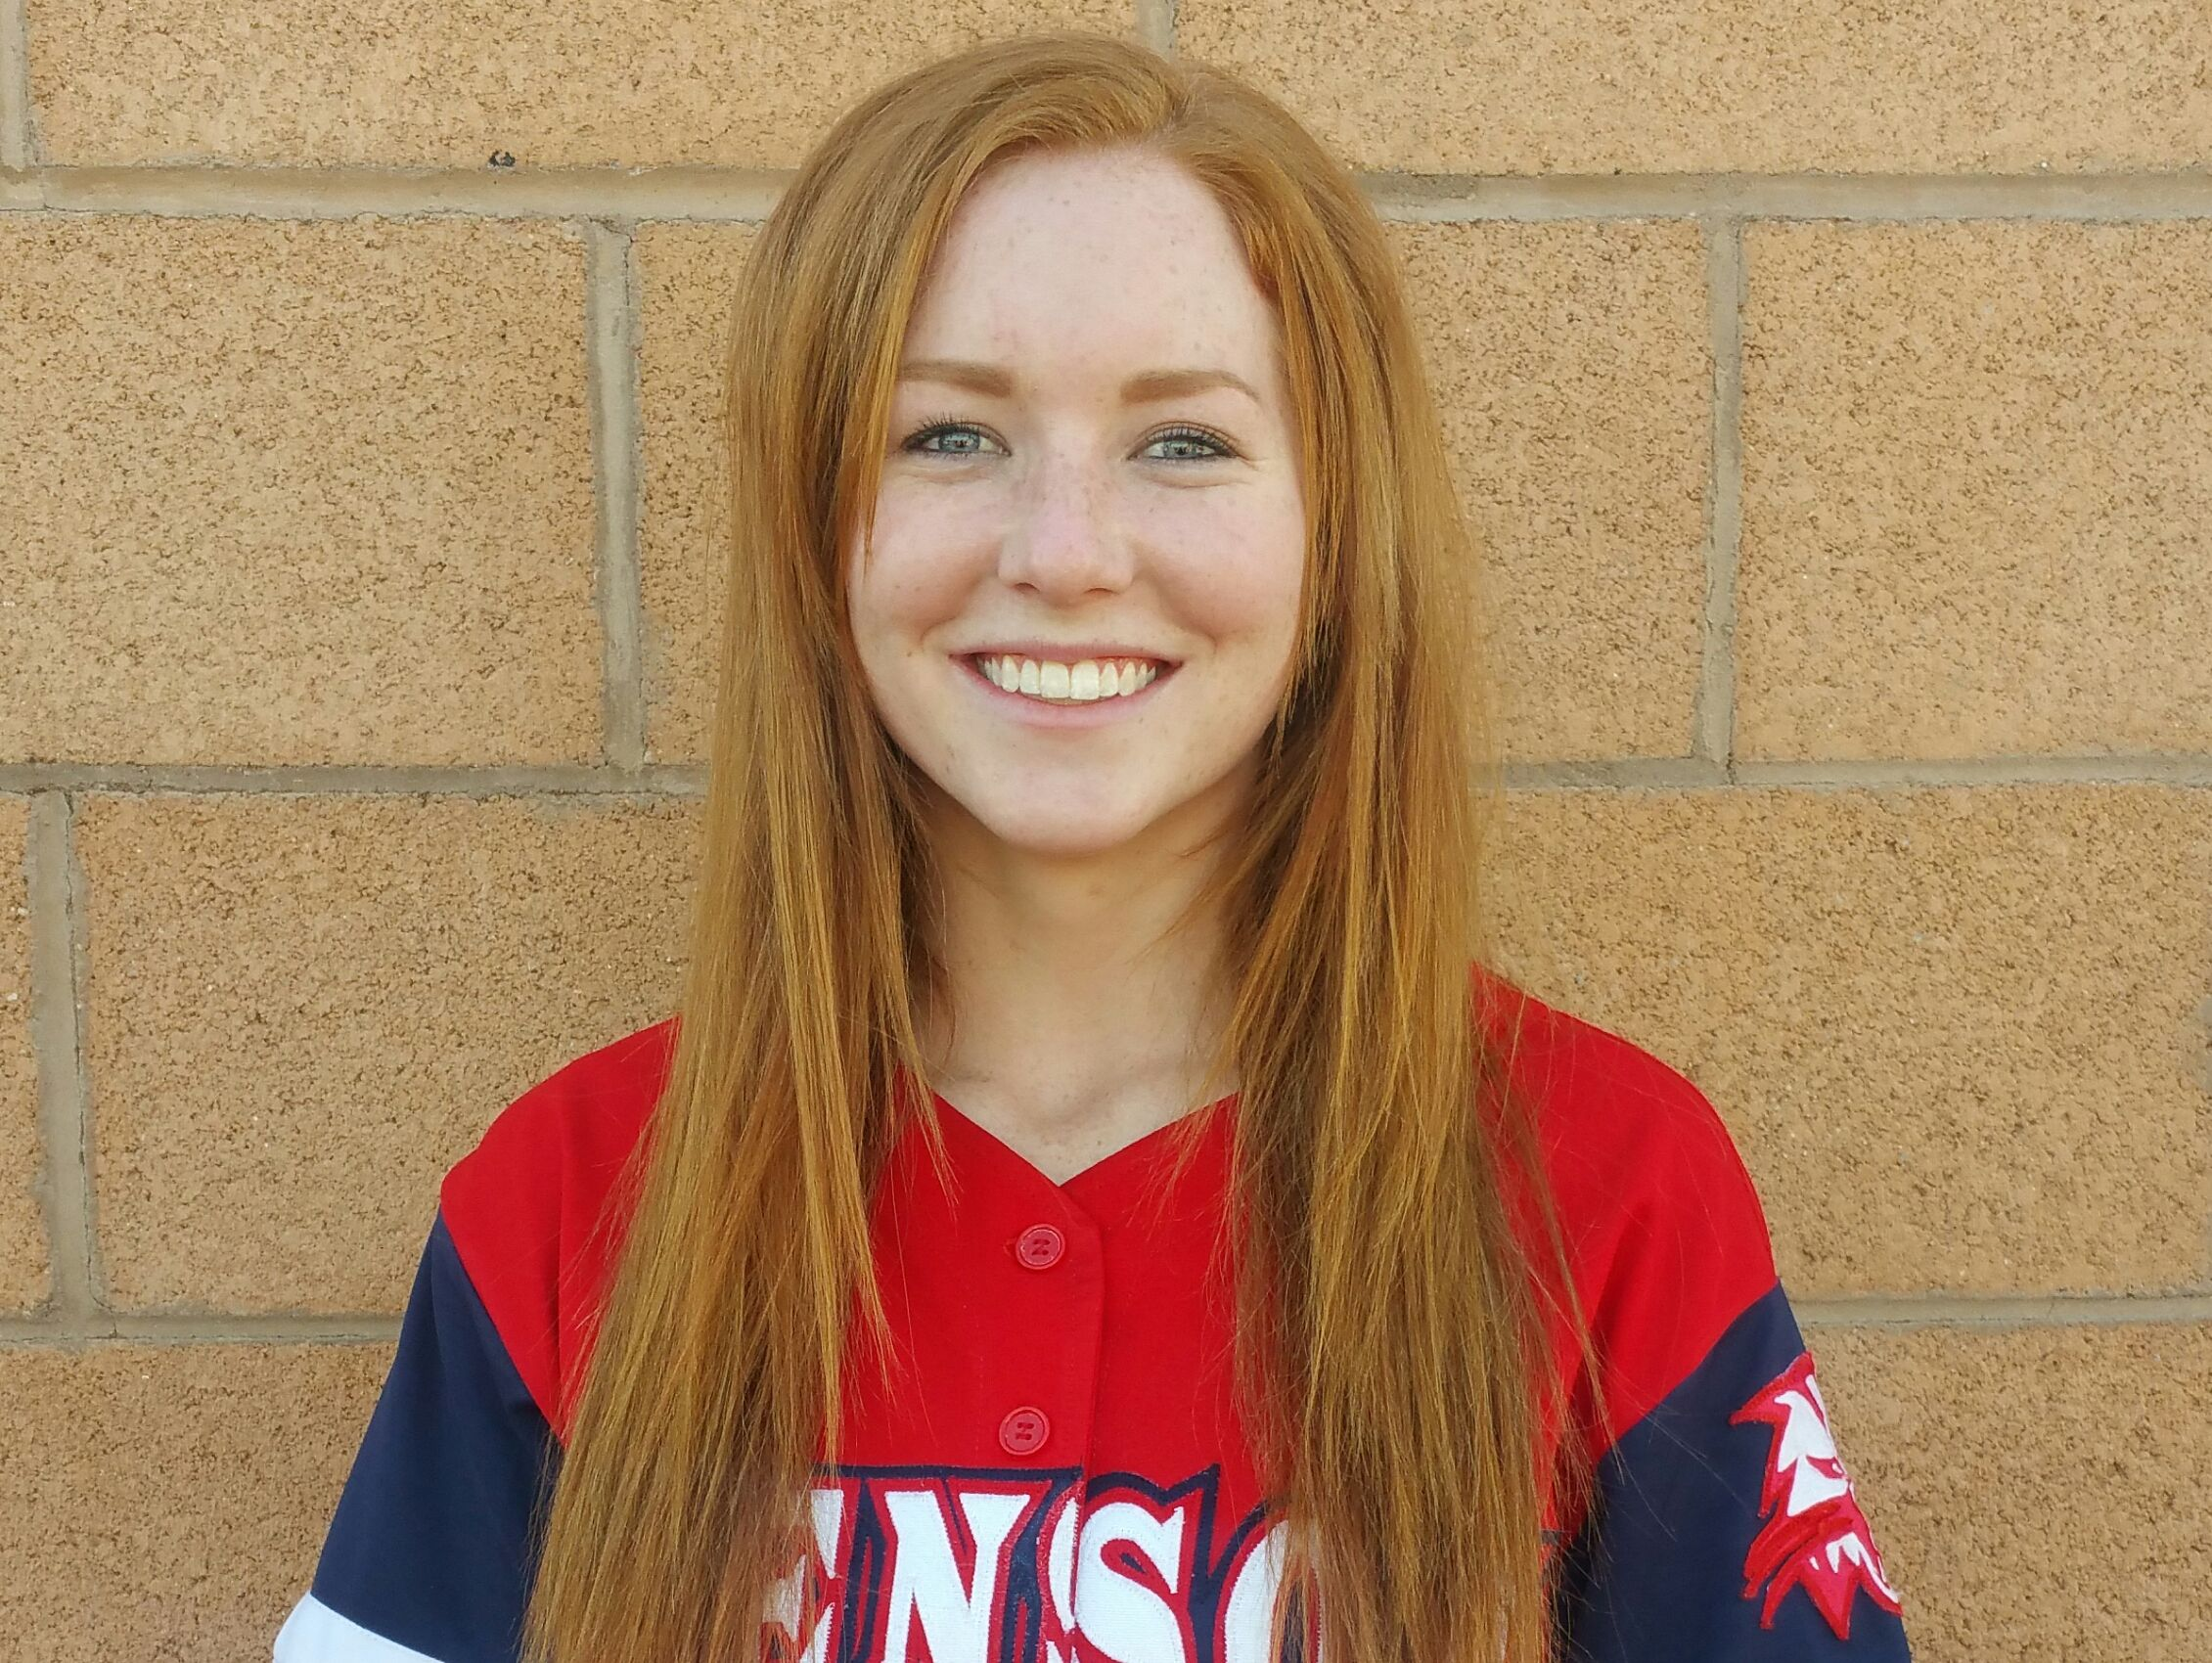 Kyndal Fenn, from Benson, is azcentral sports' Female Athlete of the Week, presented by La-Z-Boy Furniture Galleries, for April 7-14.